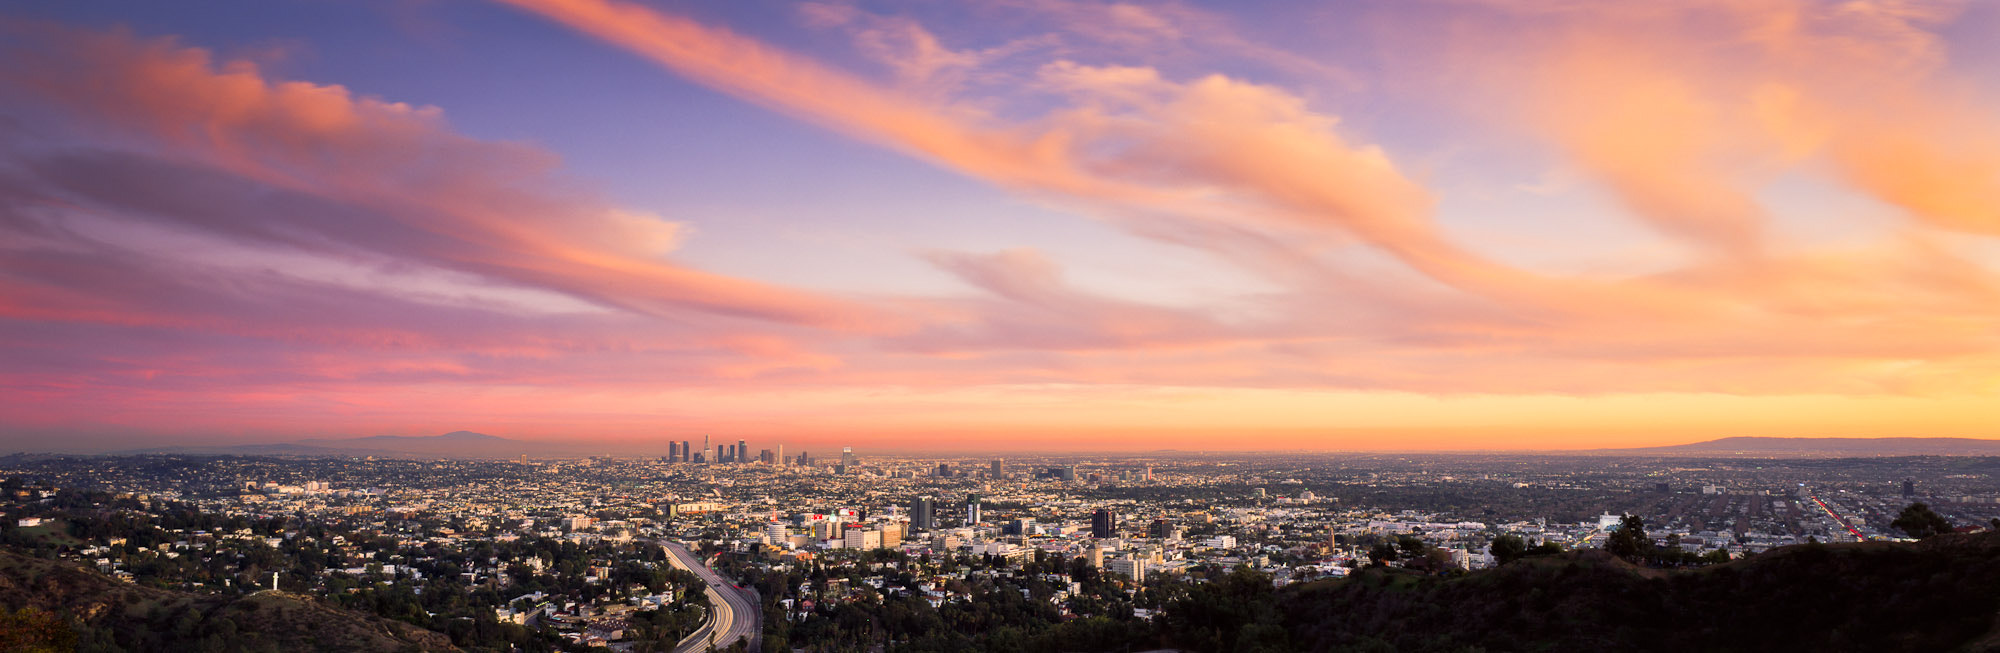 Photograph Downtown Los Angeles by John Chapple on 500px